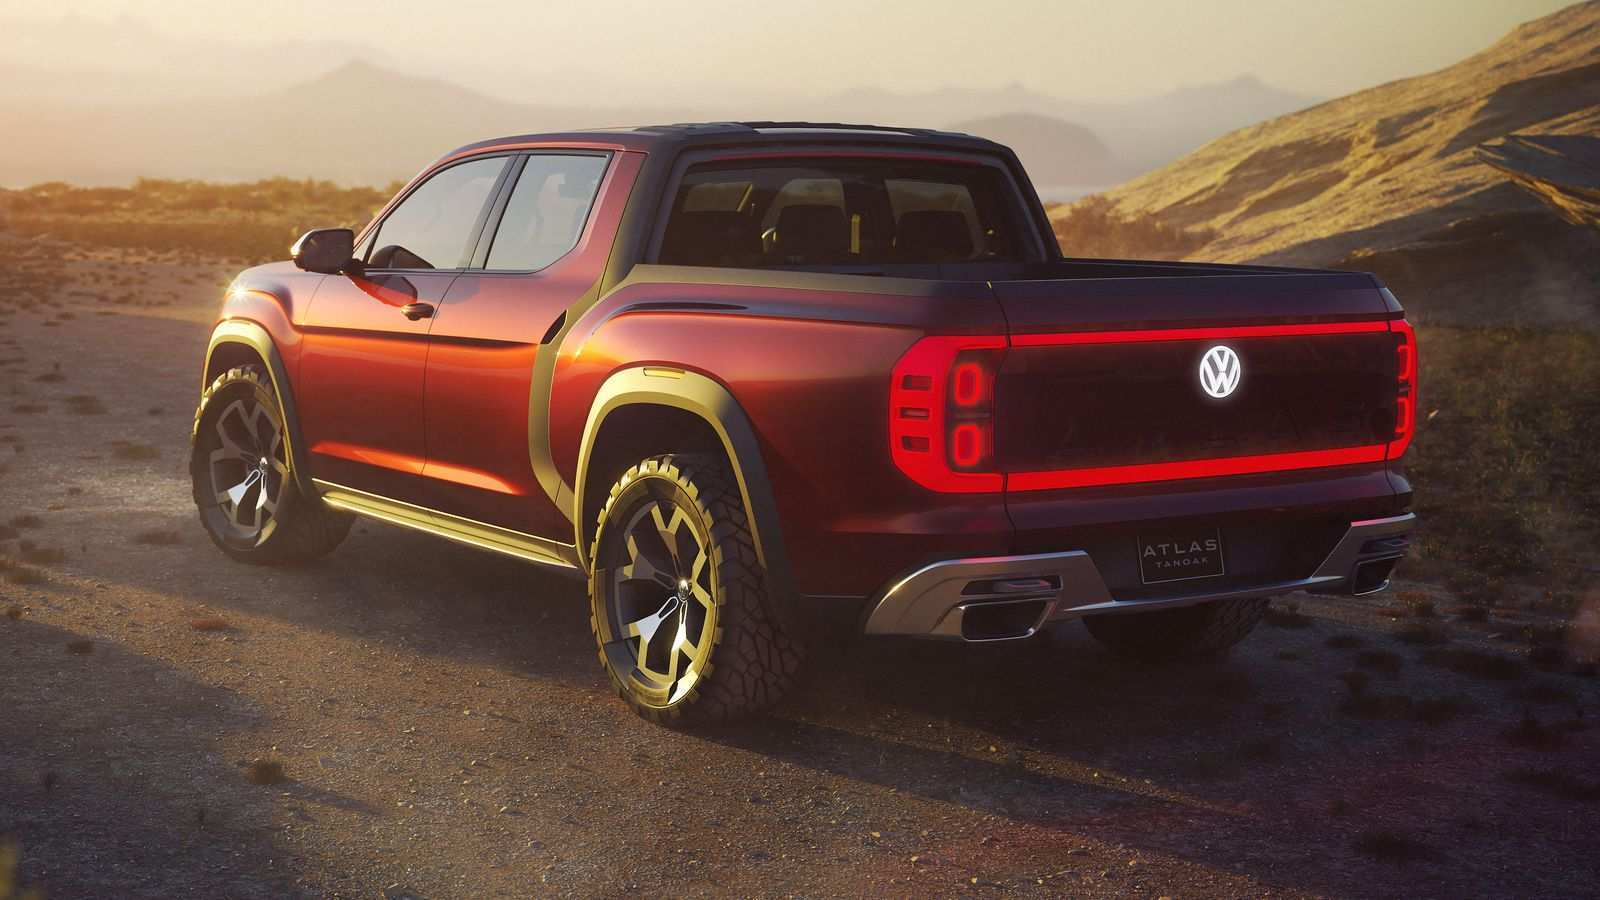 70 The Best 2019 Volkswagen Pickup Truck Images